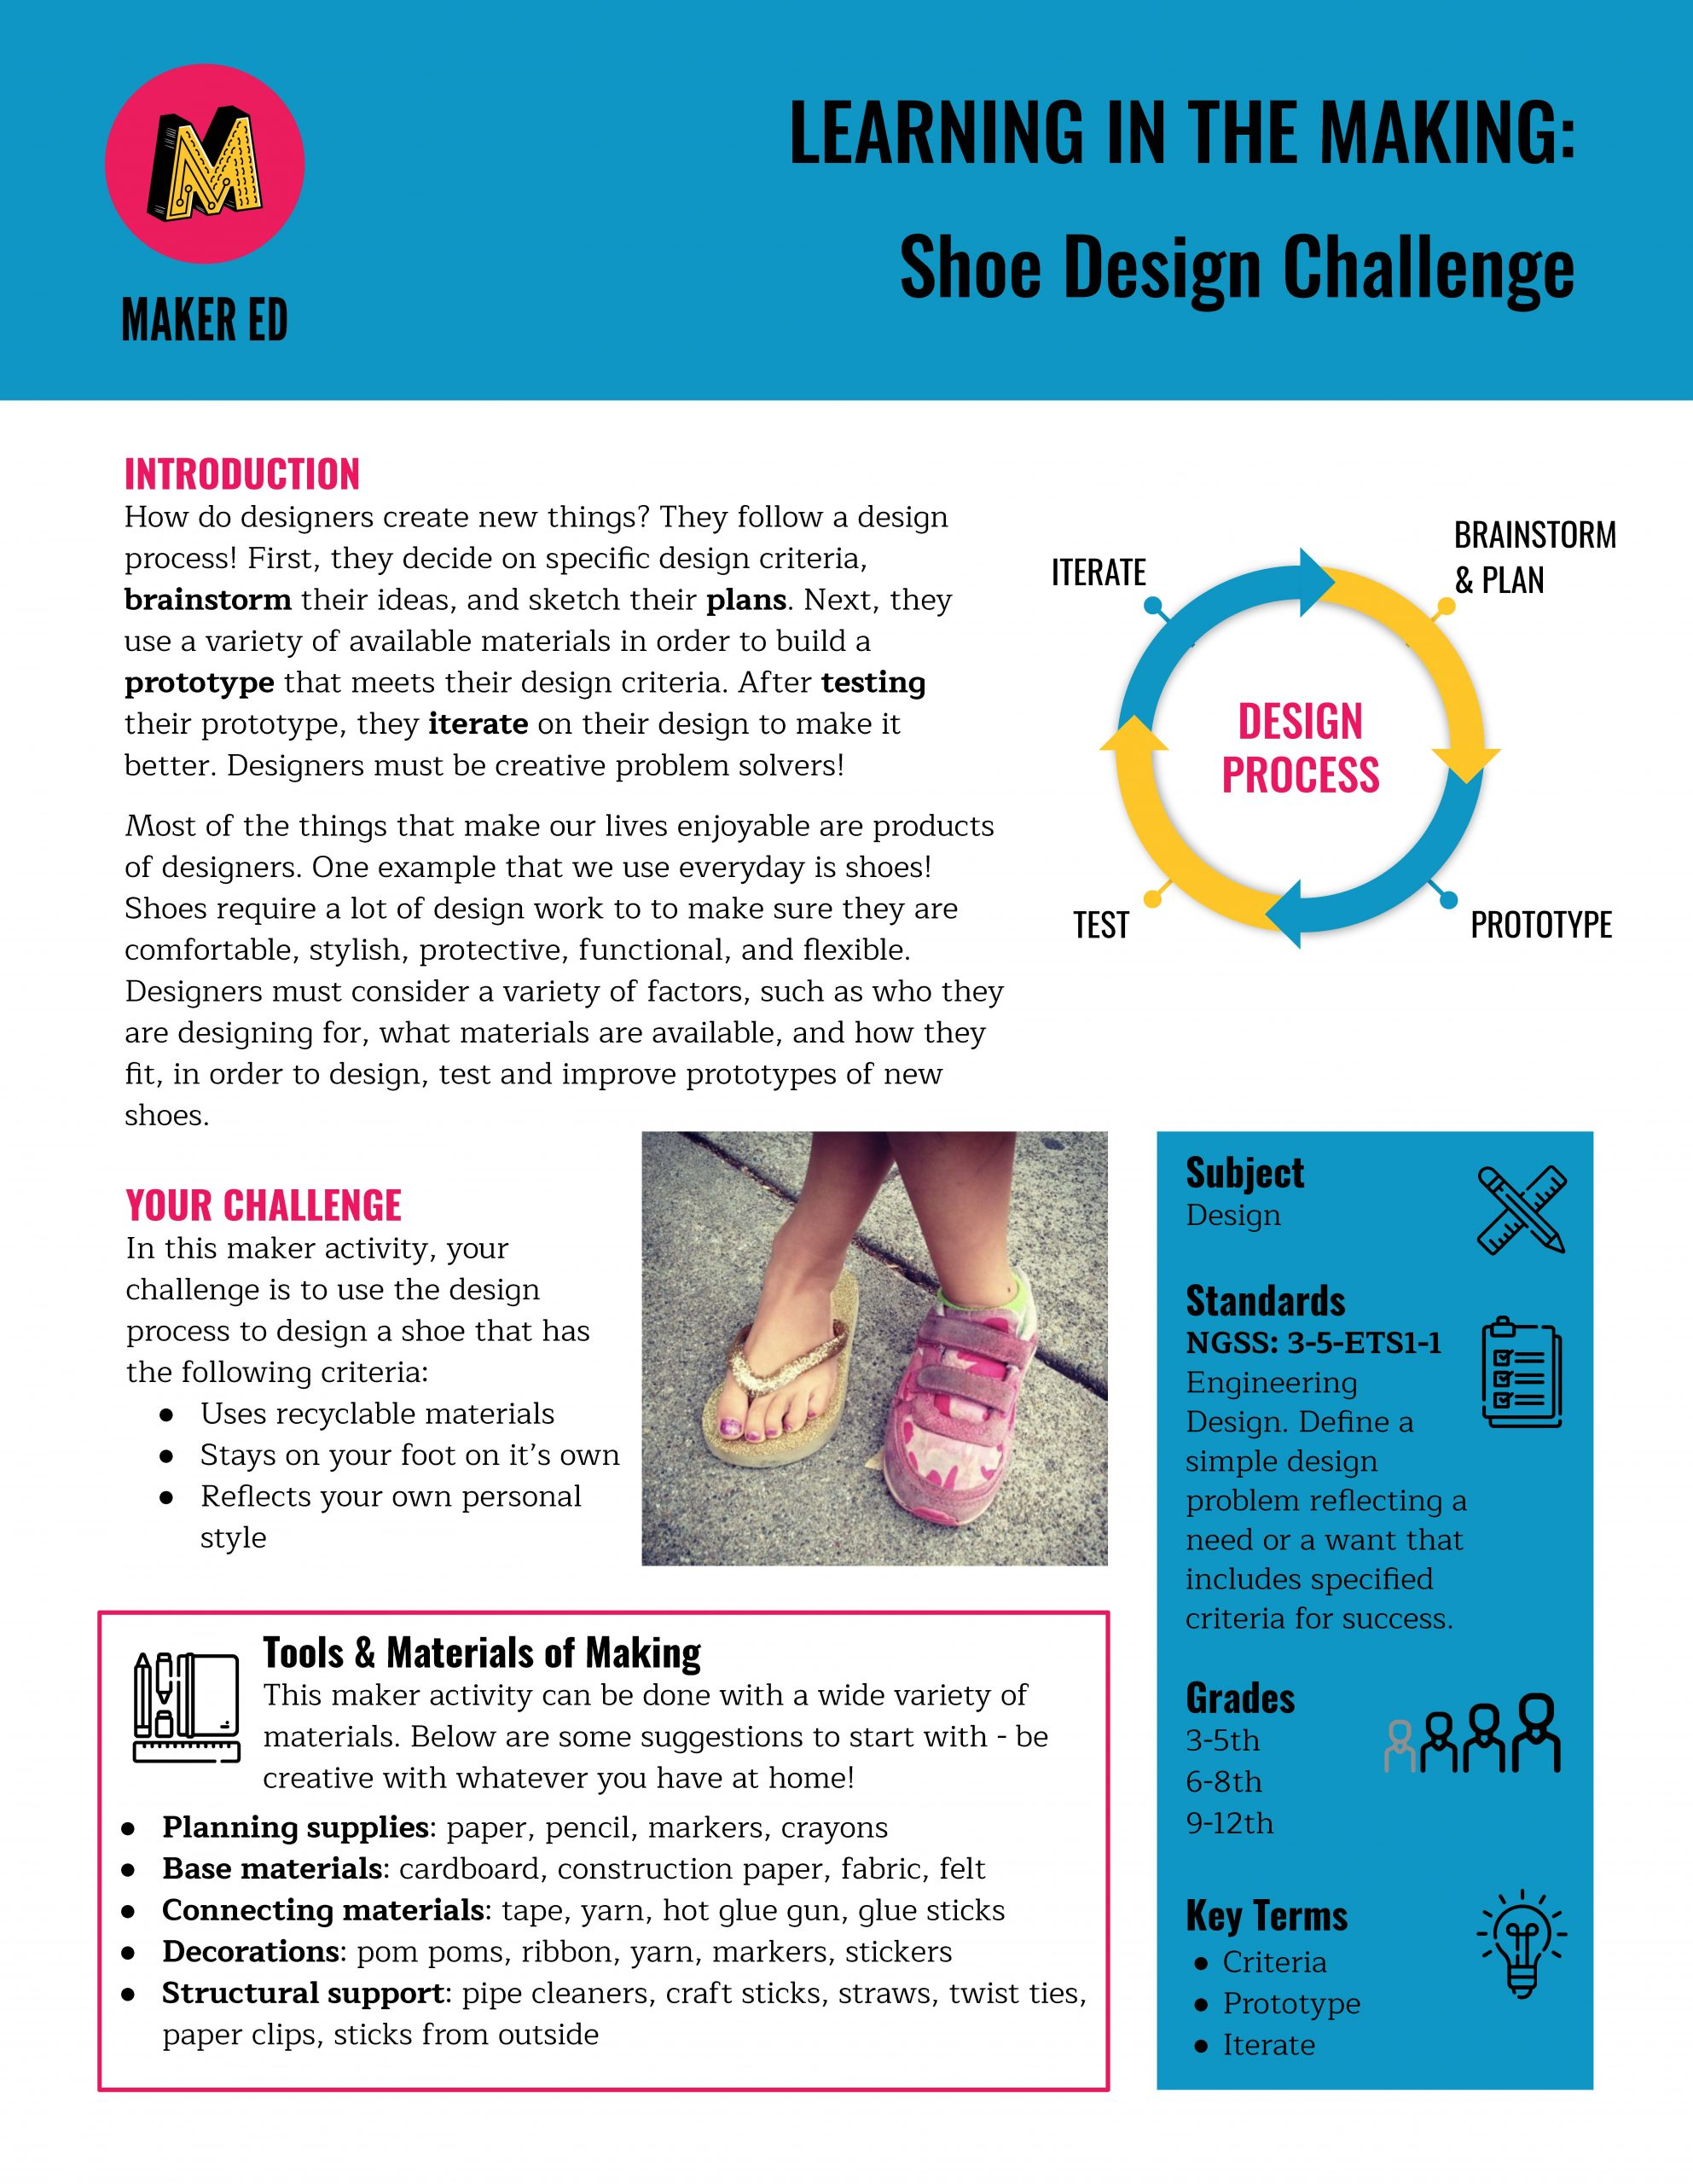 Learning in the Making: Shoe Design Challenge